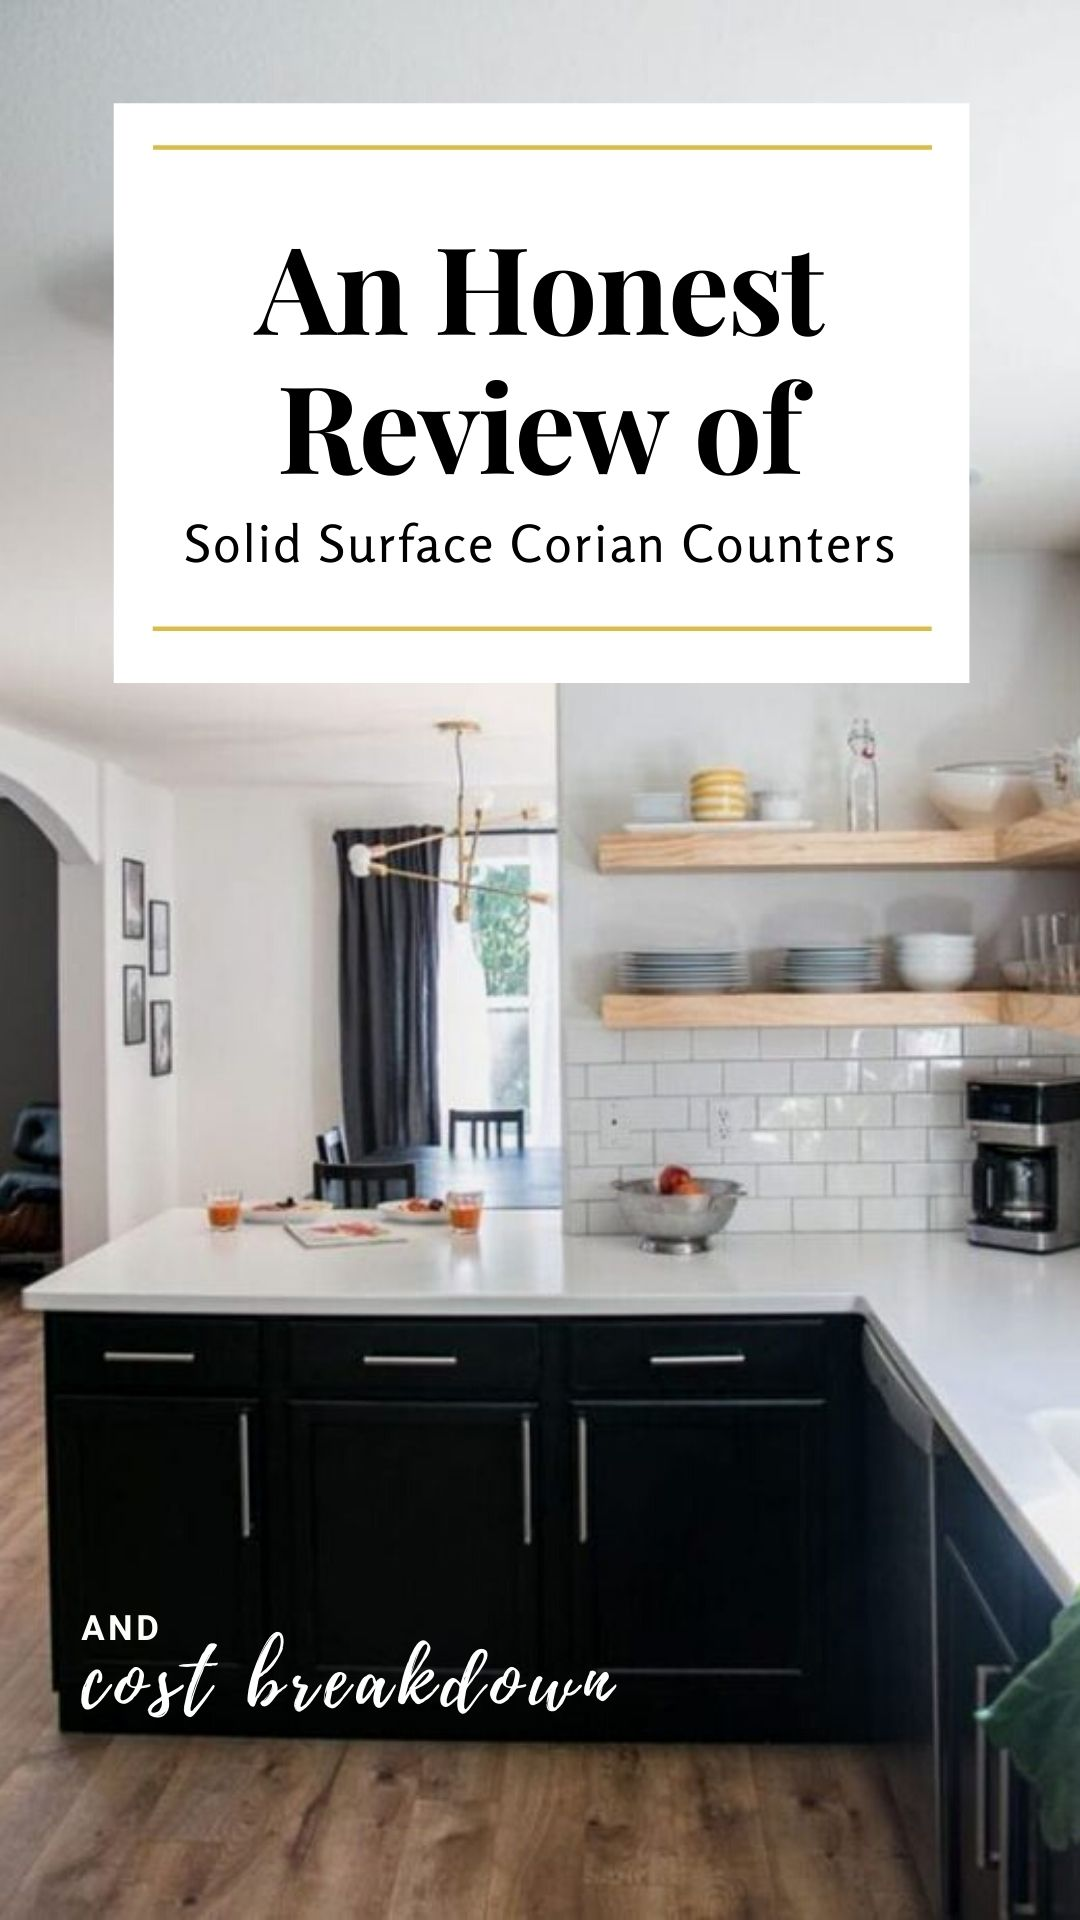 Review of Solid Surface Corian Counters